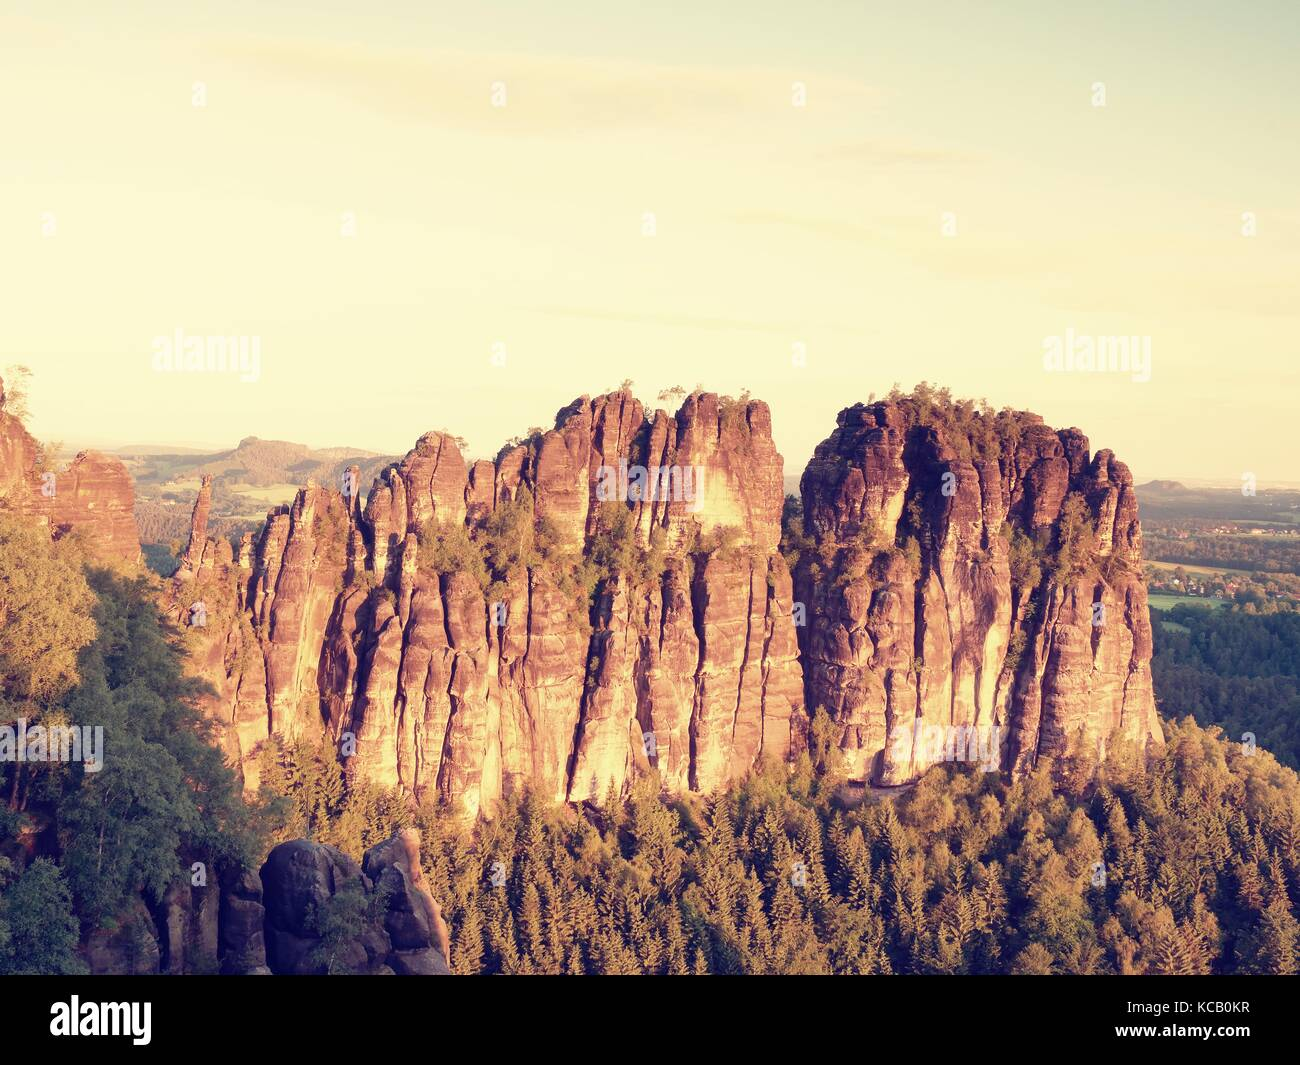 Morning sunlight on rocky towers of Schrammsteine in national park Saxony Switzerland, Germany. Popular climbers - Stock Image